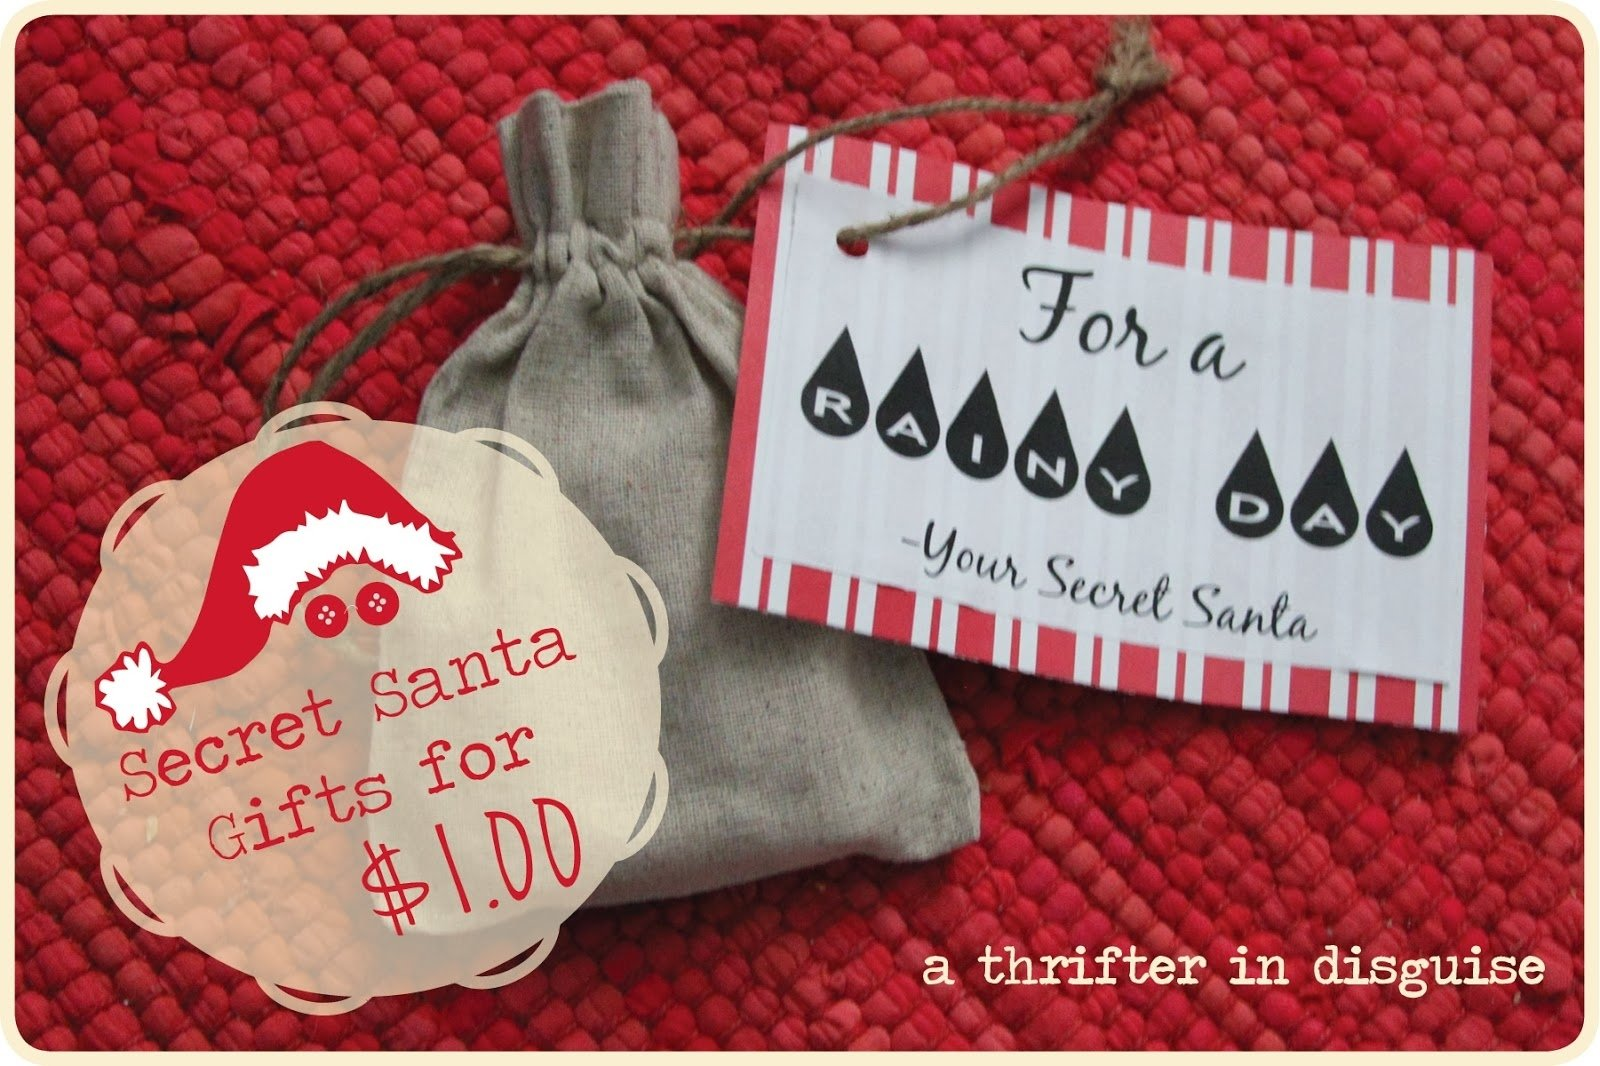 10 Fabulous Homemade Secret Santa Gift Ideas a thrifter in disguise secret santa saturday gifts for a dollar 3 2020